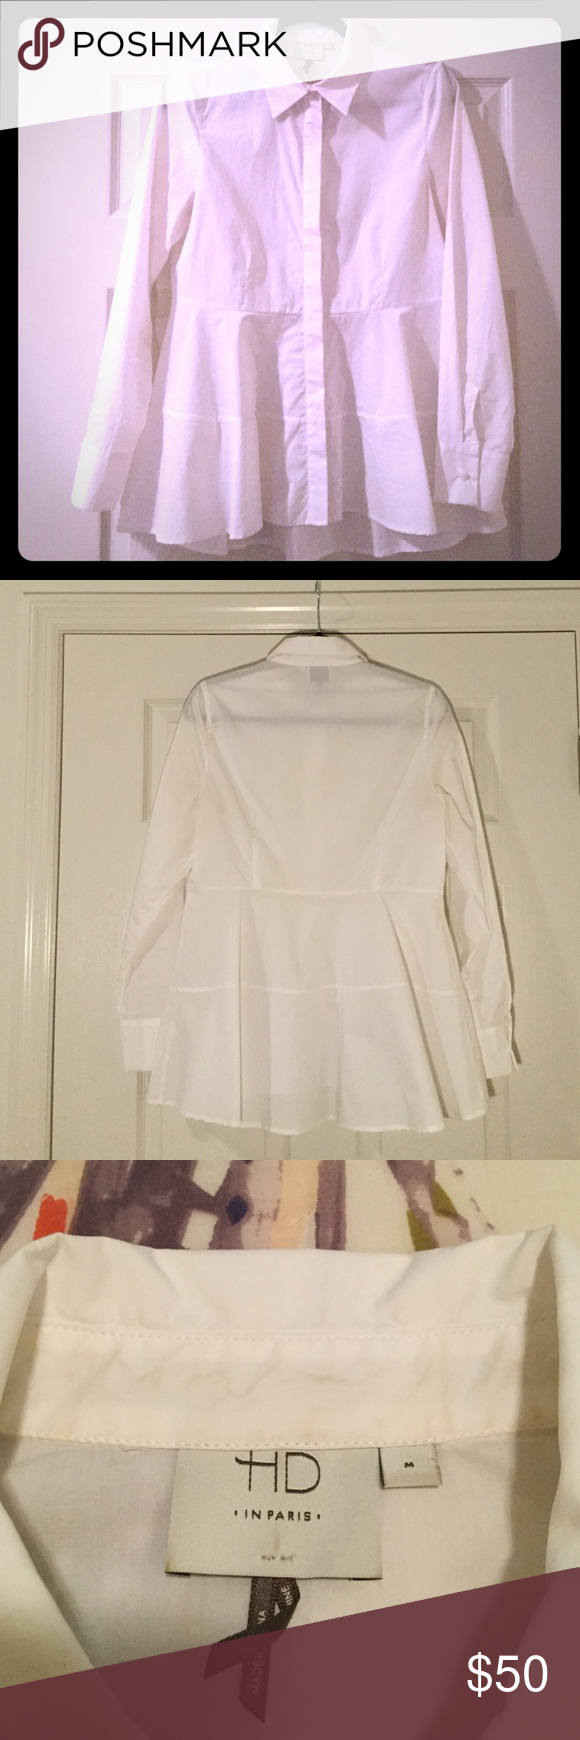 White blouse by HD in Paris This crisp white blouse adds flair to a classic style! The front features a panel to hide the buttons - which do run the full length of the piece. The fit is classic shoulder to waist, below the waist the material flares. Condition: barely worn. Anthropologie Tops Blouses